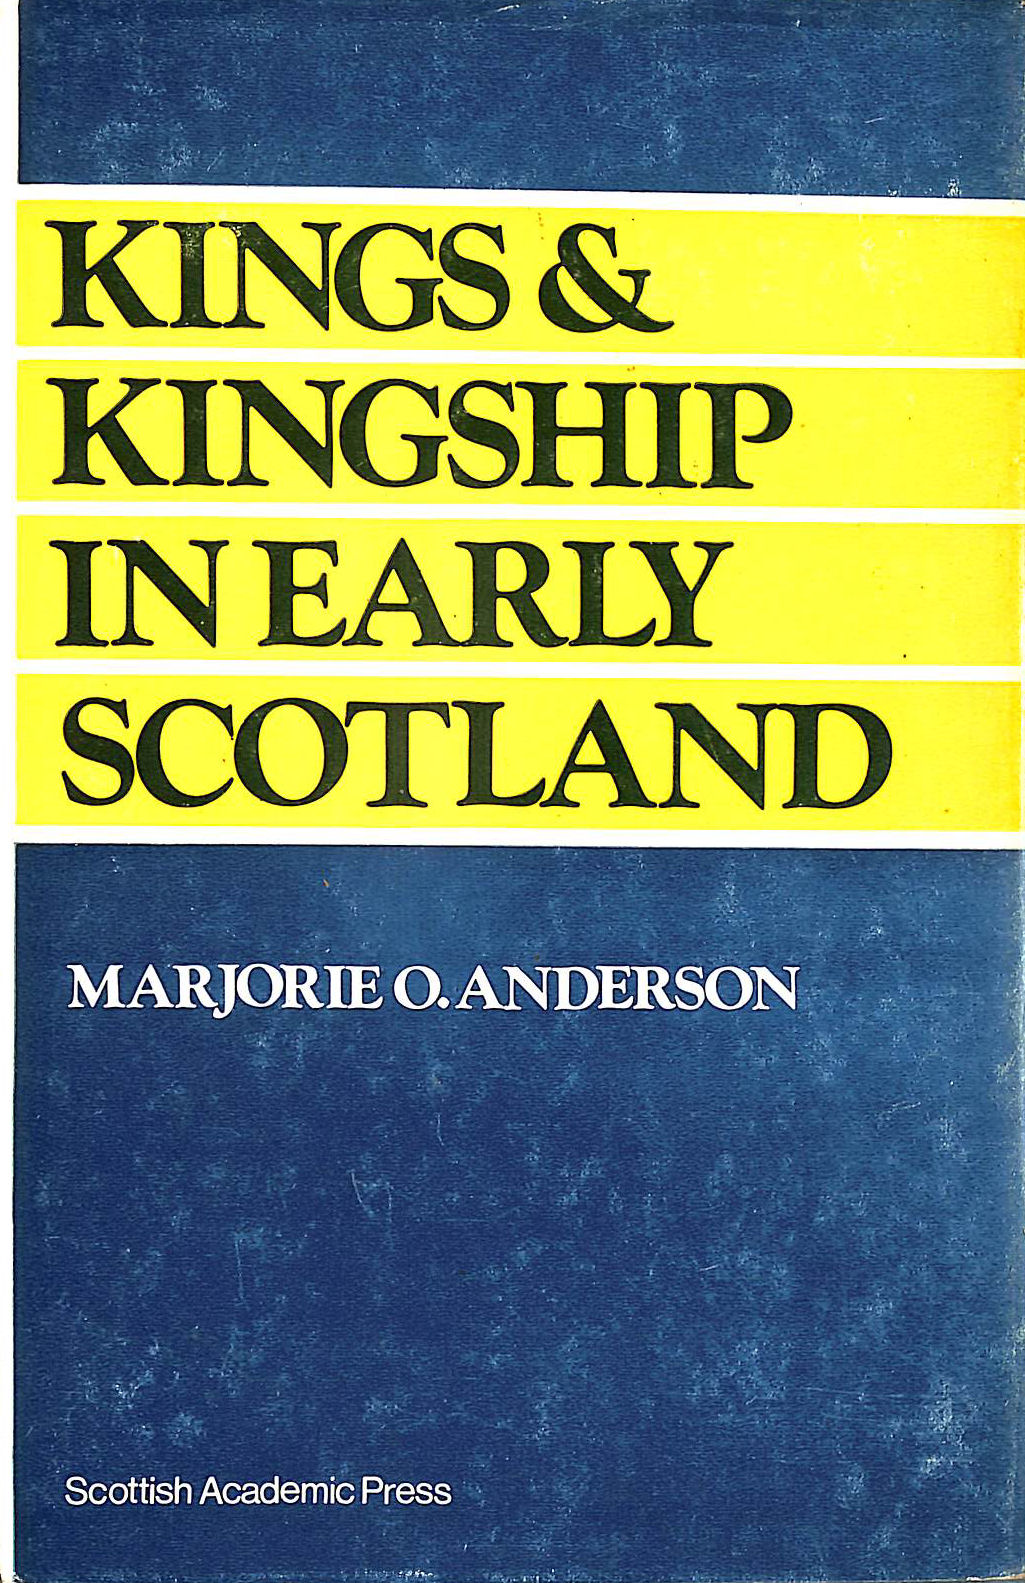 Image for Kings and kingship in early Scotland